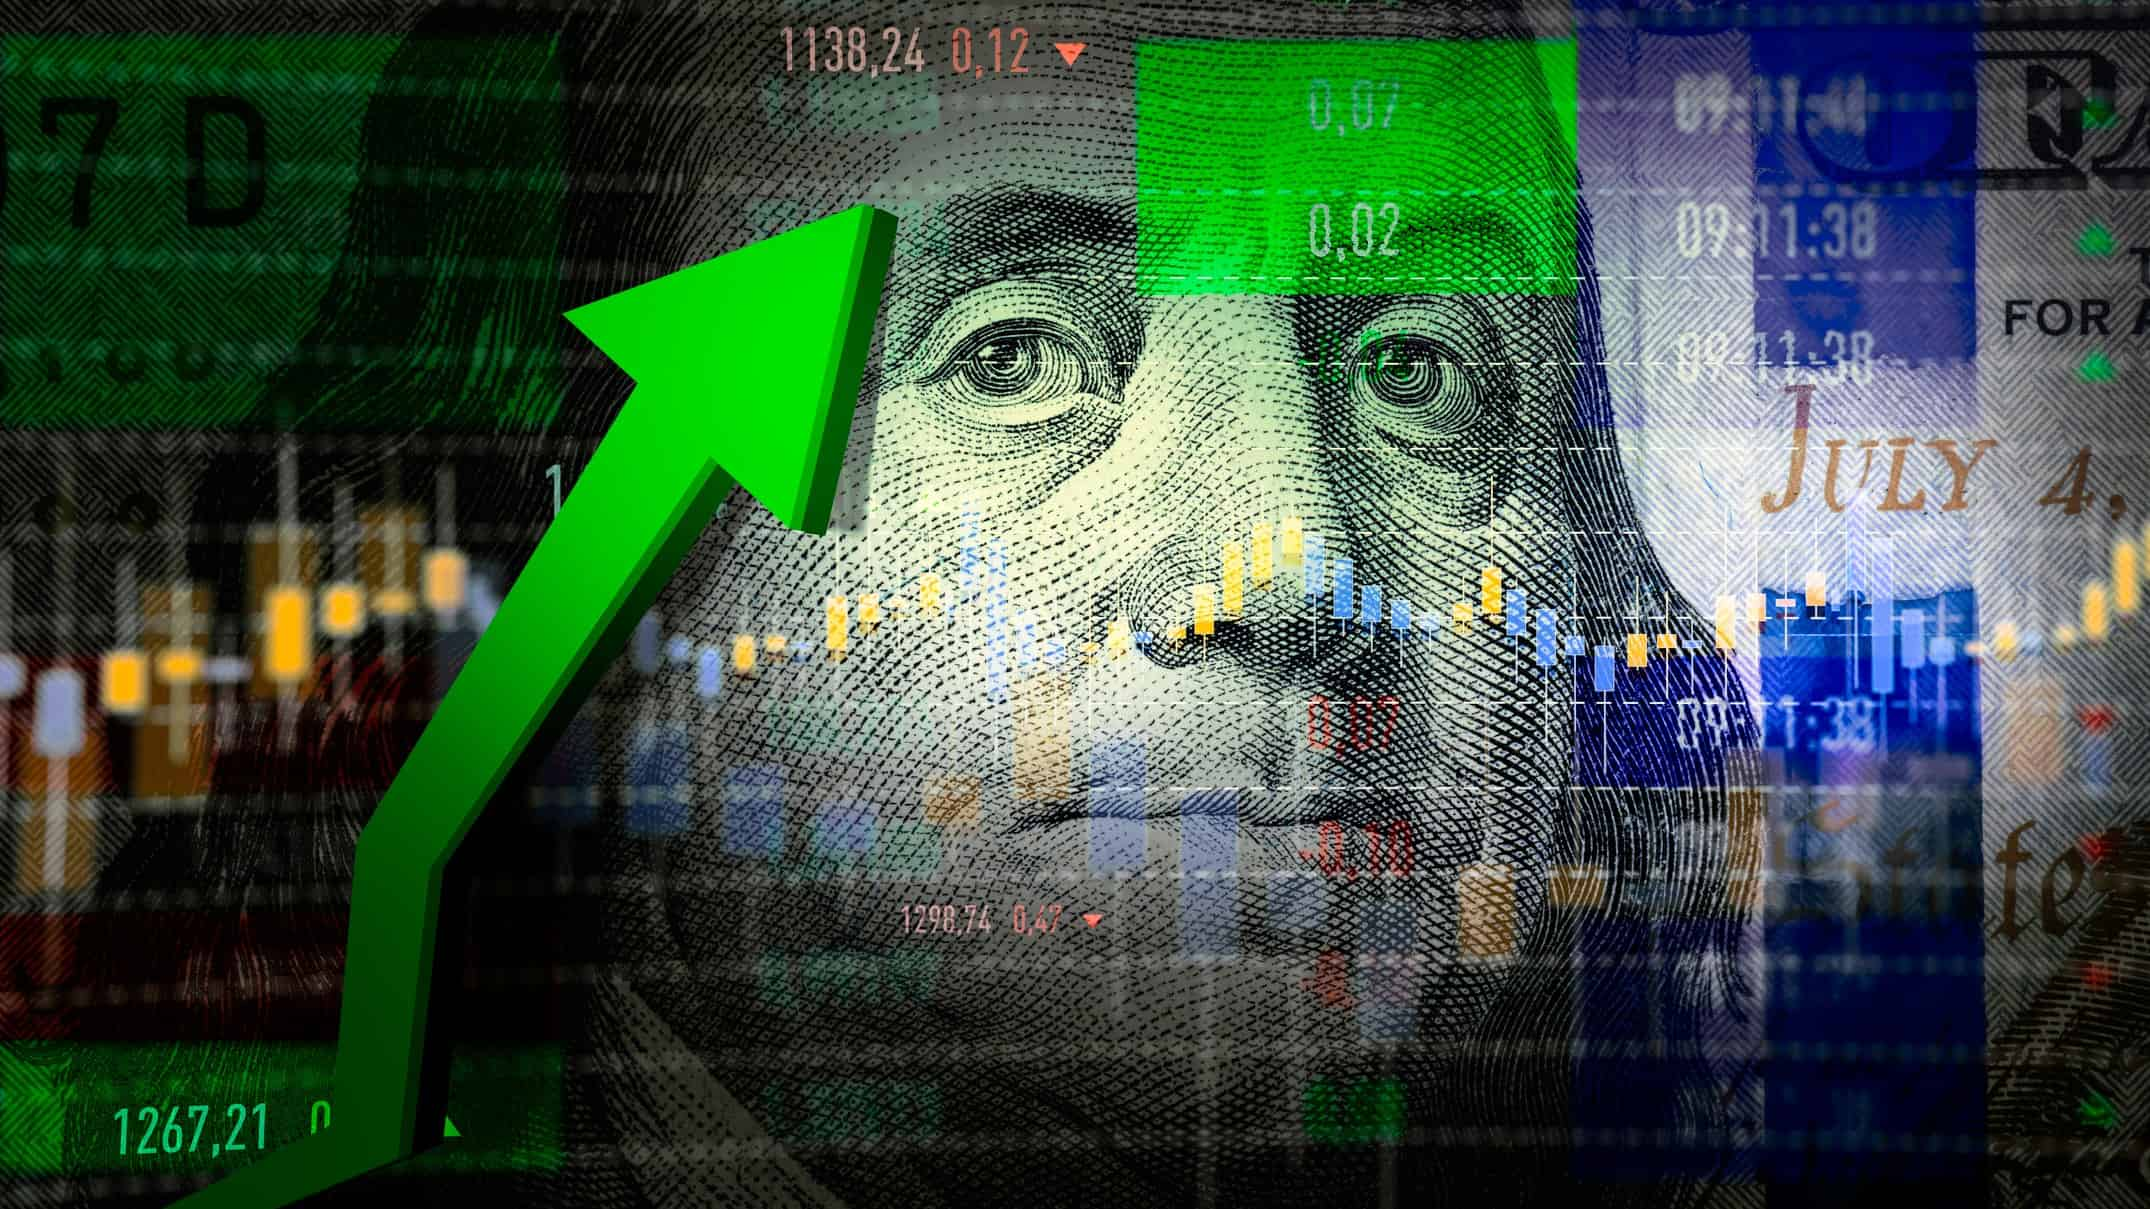 A graphic design of the face of a US dollar bill and a share market graph with a big green arrow indicating a surge in US share prices